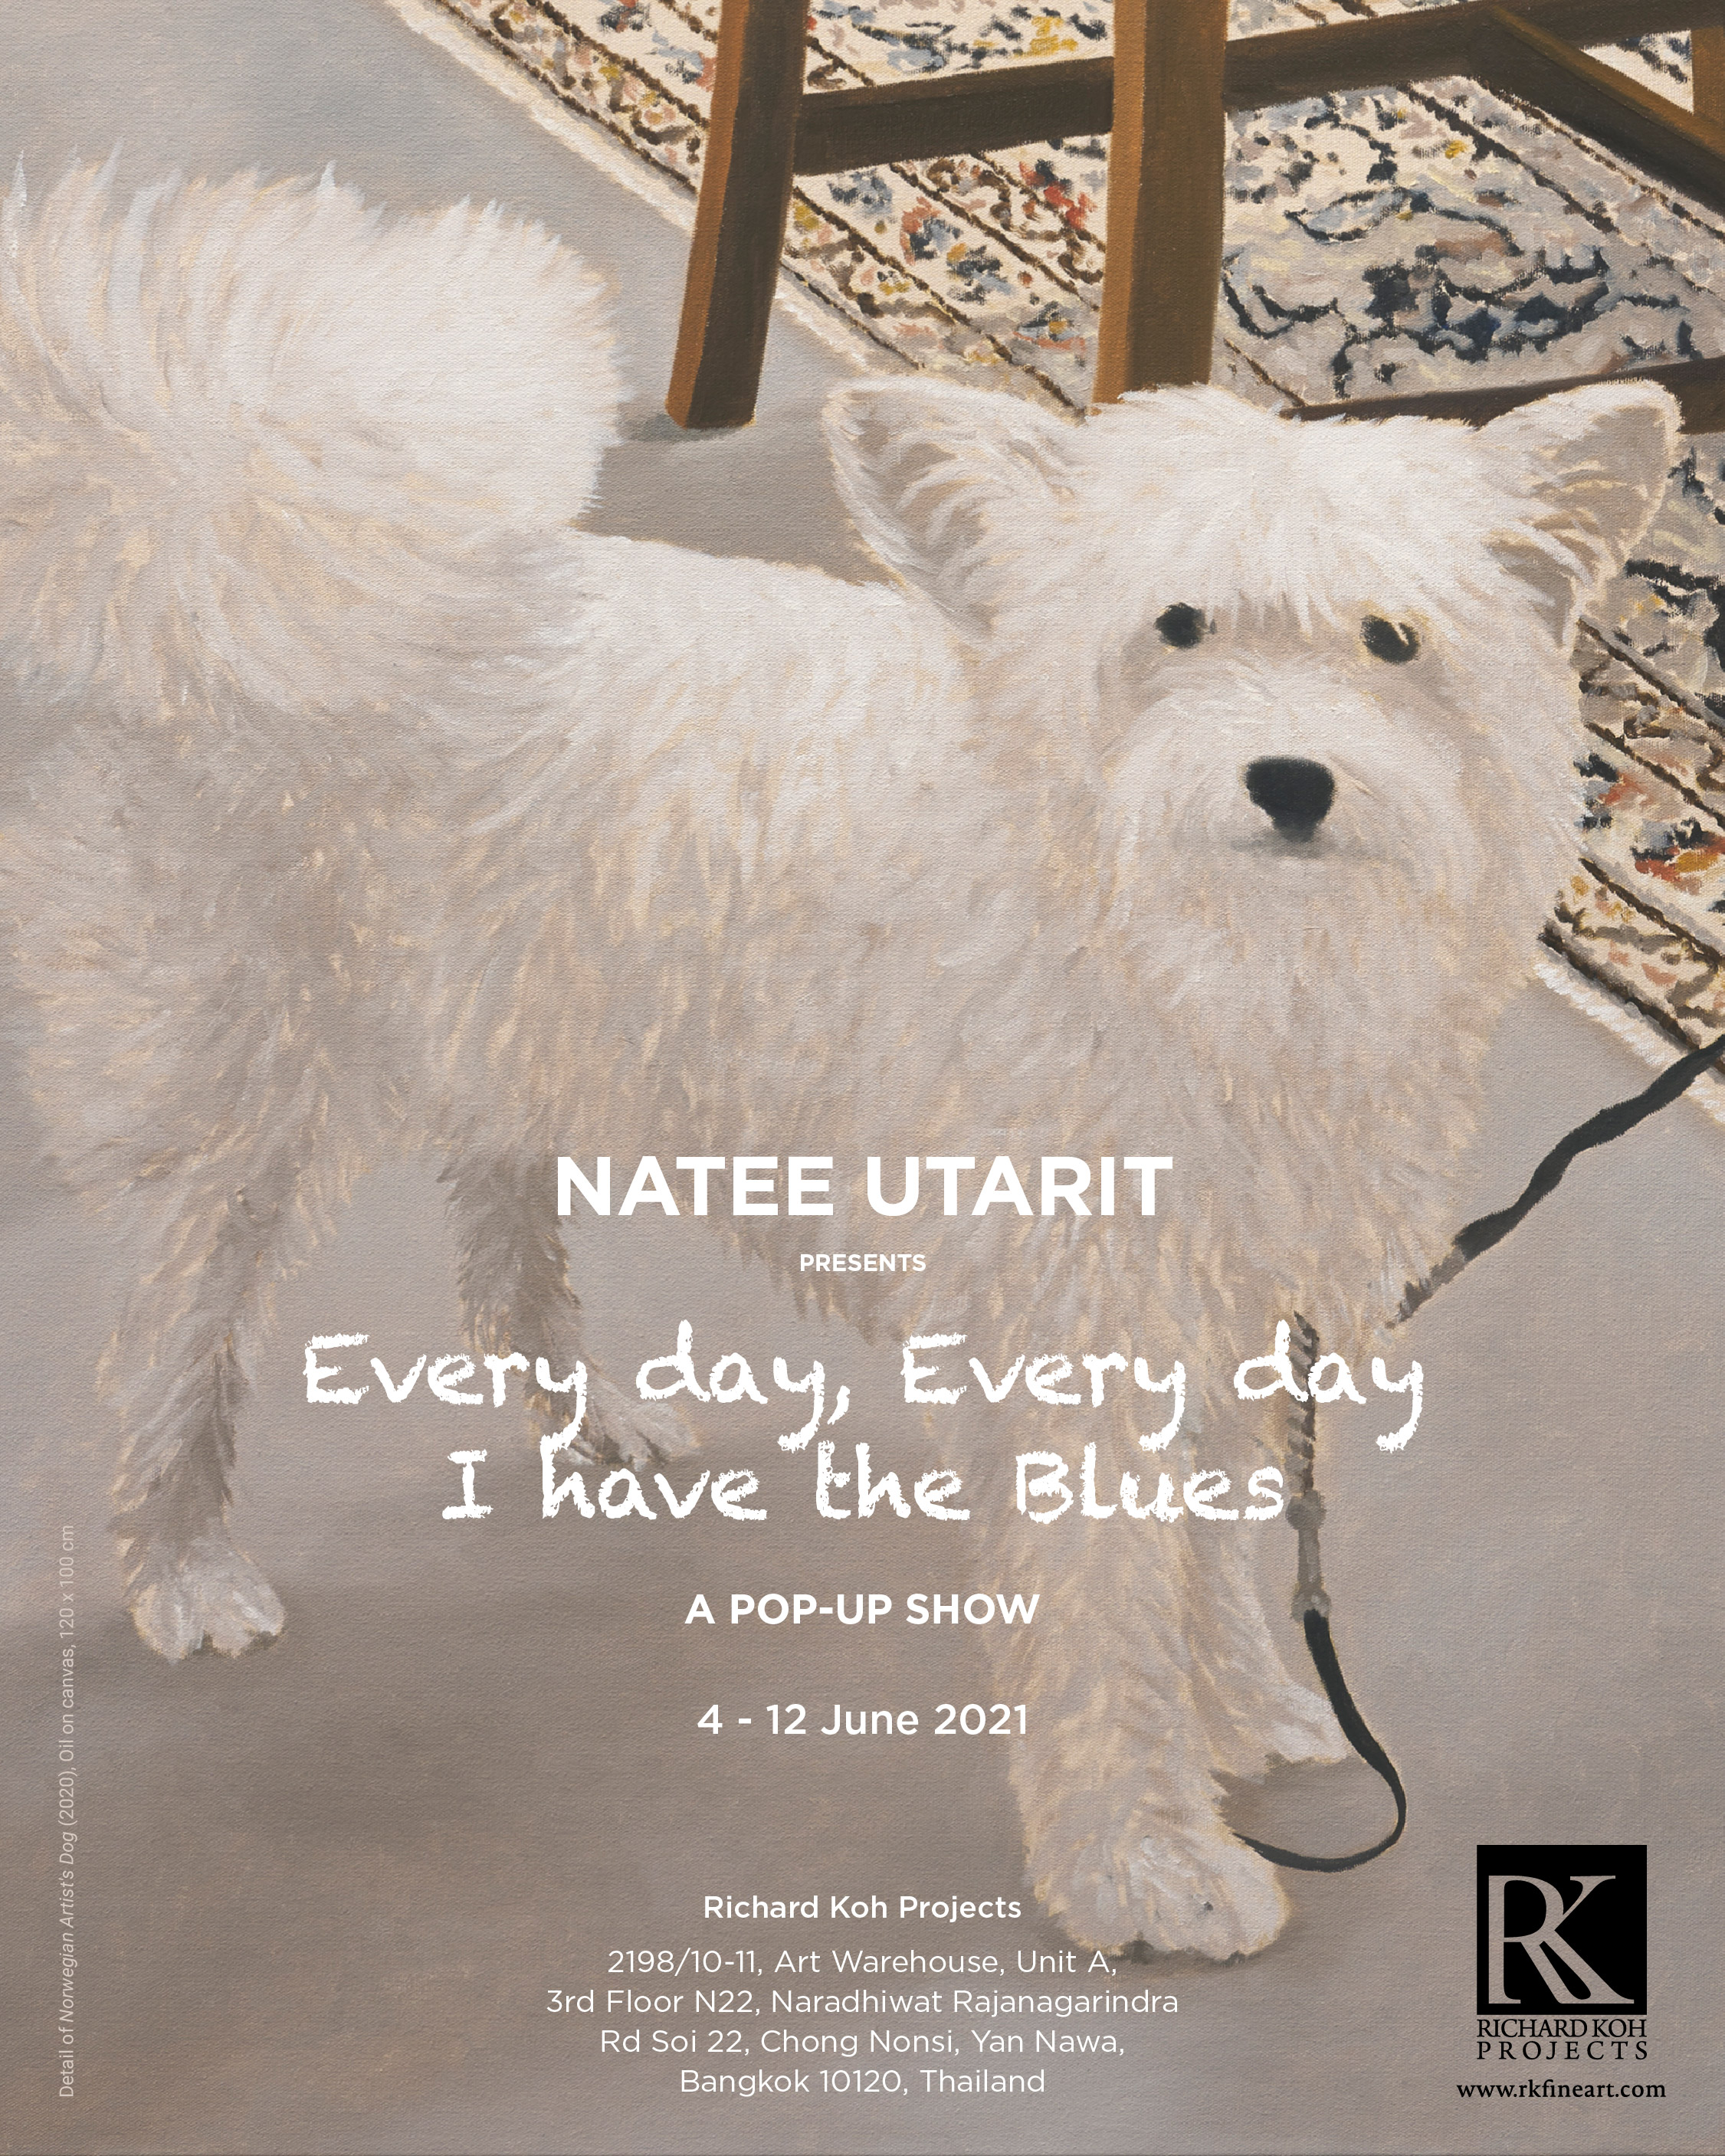 Natee Utarit – Every day, Every day I have the Blues